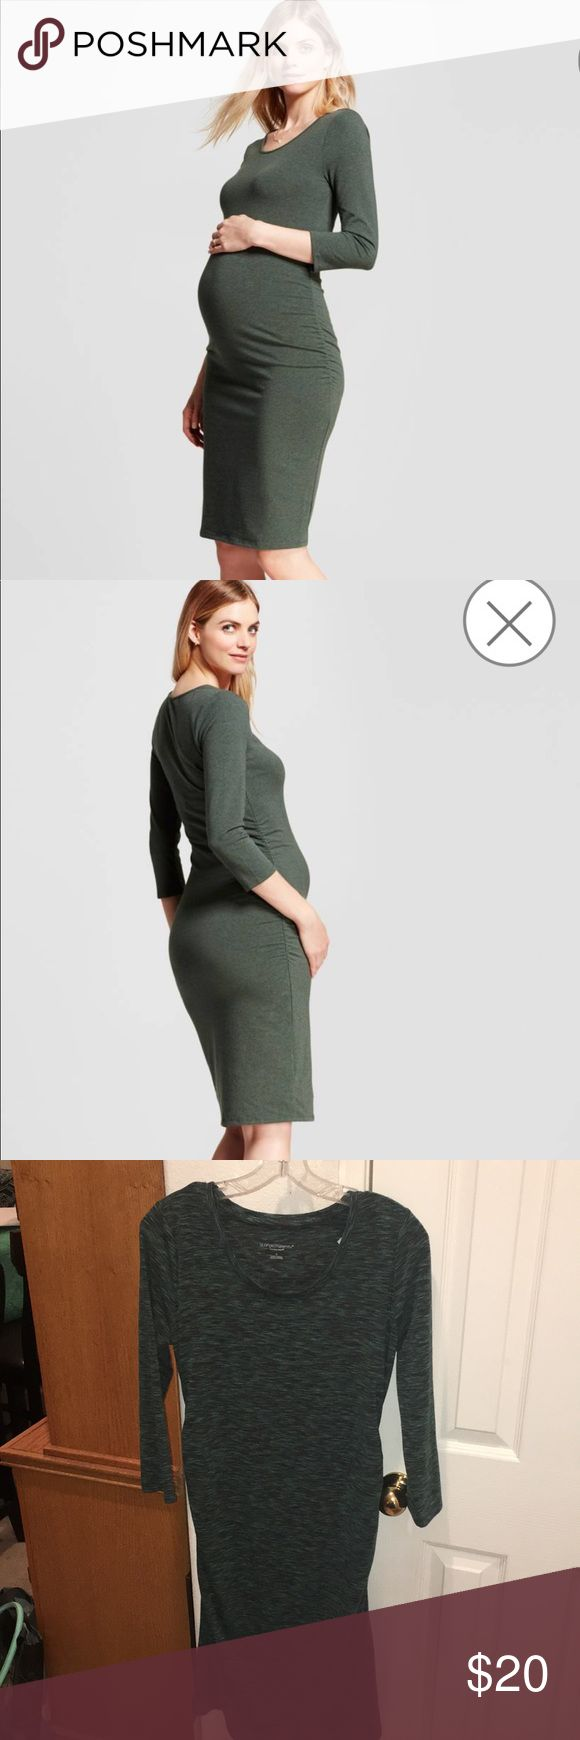 Liz Lange Bodycon Maternity Dress! NWOT hunter green maternity dress from Liz Lange. 3/4 sleeve Knee length stretch dress that shows off your baby bump beautifully! 84%polyester, 11%Rayon, 5%spandex.  The most comfortable dress ever while your carrying a sweet little one inside! Accentuates your mommy curves and keeps you styling and comfortable! ! A must have! ❤️ Liz Lange Maternity Dresses